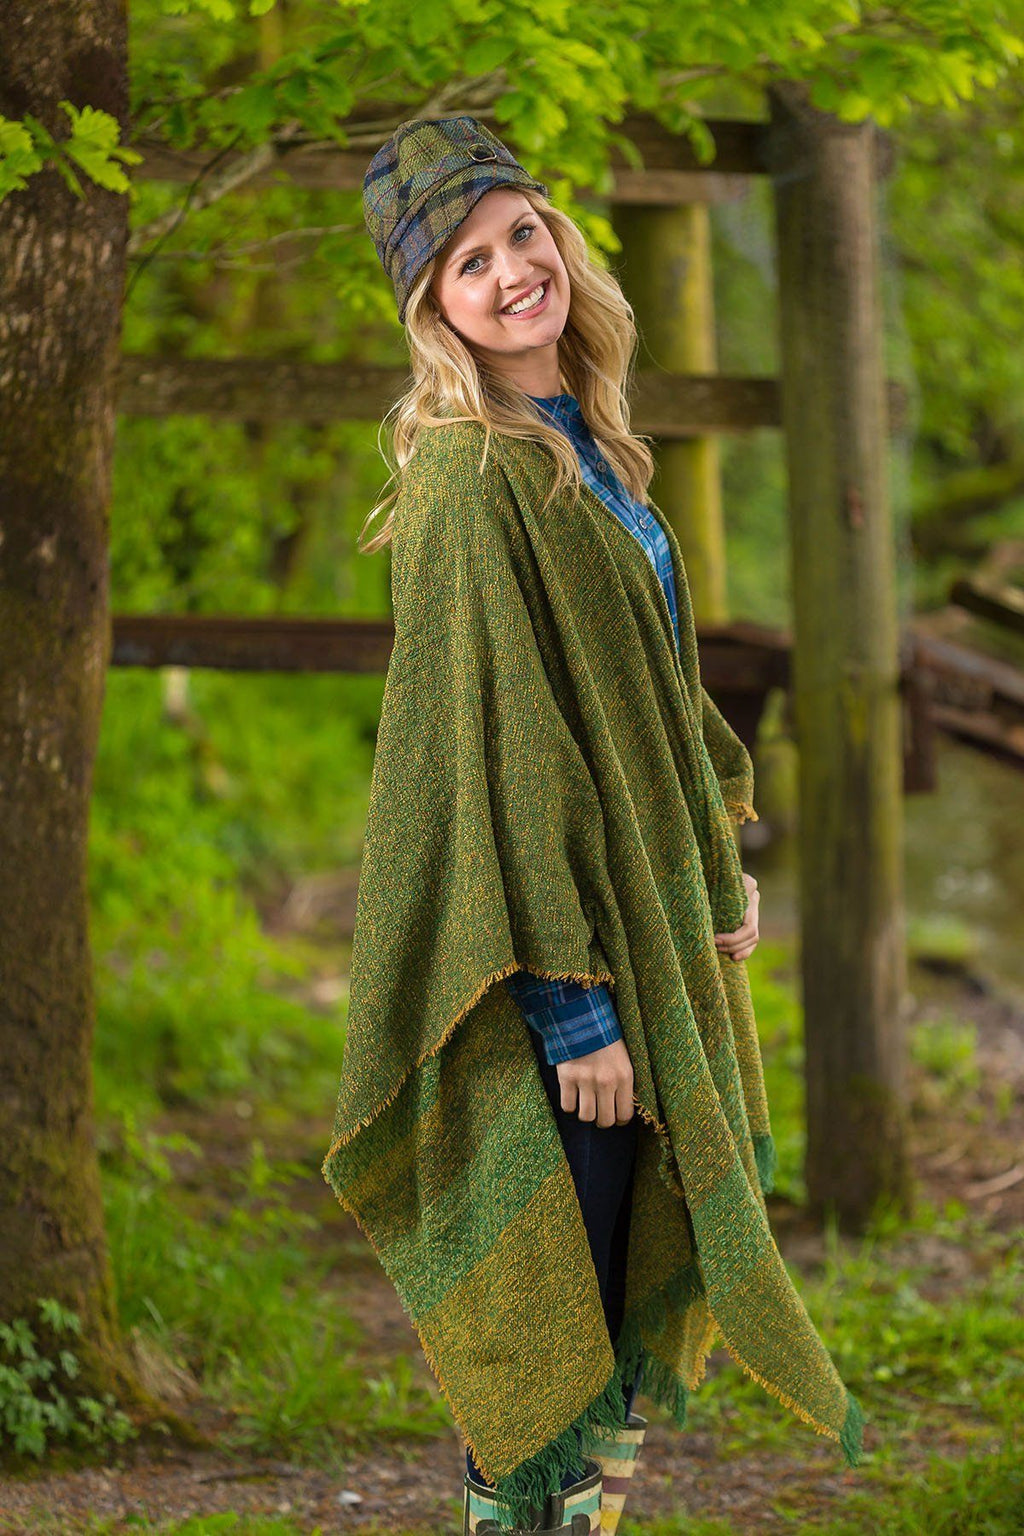 Celtic Wool Shawl - Kelly Green Knitwear Lee Valley Ireland